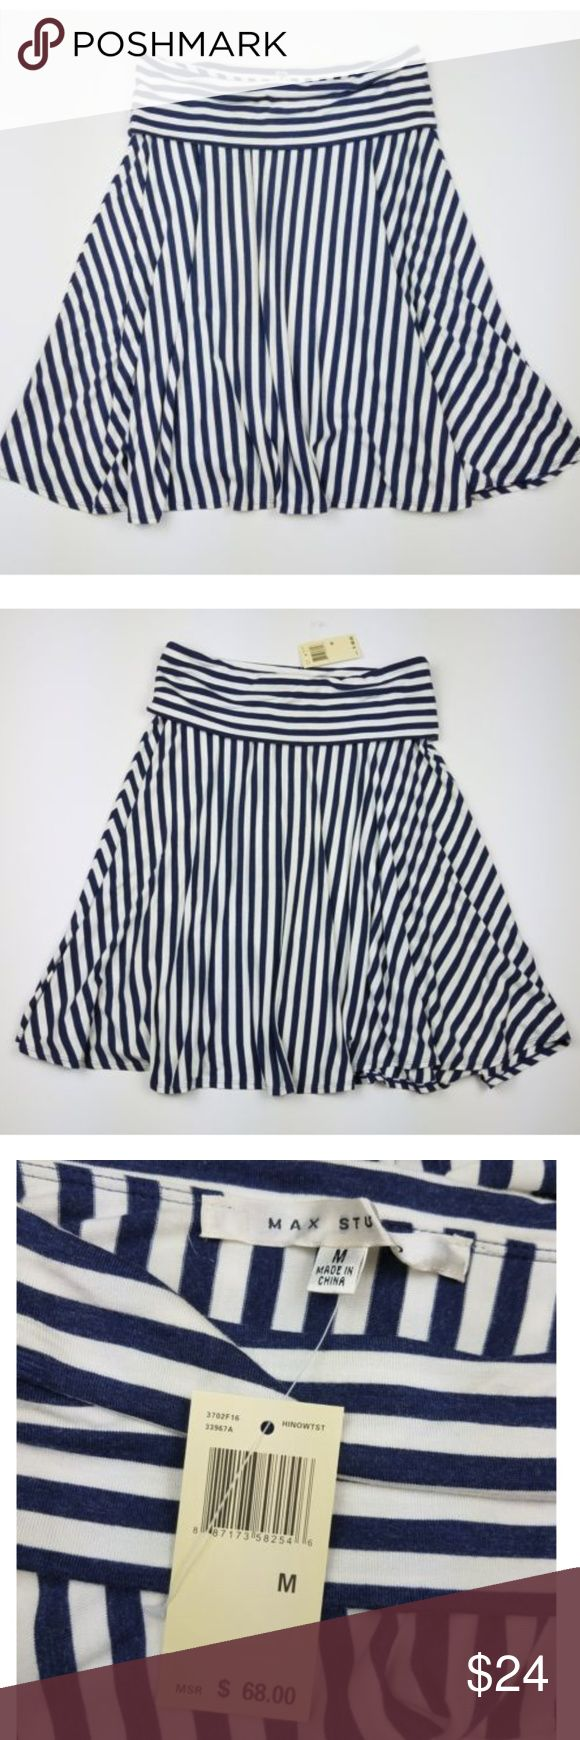 MAX STUDIO Skirt Jersey A-Line Navy Blue Medium New with tags.  Measurements taken with item lying flat in inches Waist: 13.5 Length: 20.5 Material: 95% rayon 5% spandex Style Number: 3702F16  P27-G218 Max Studio Skirts Midi